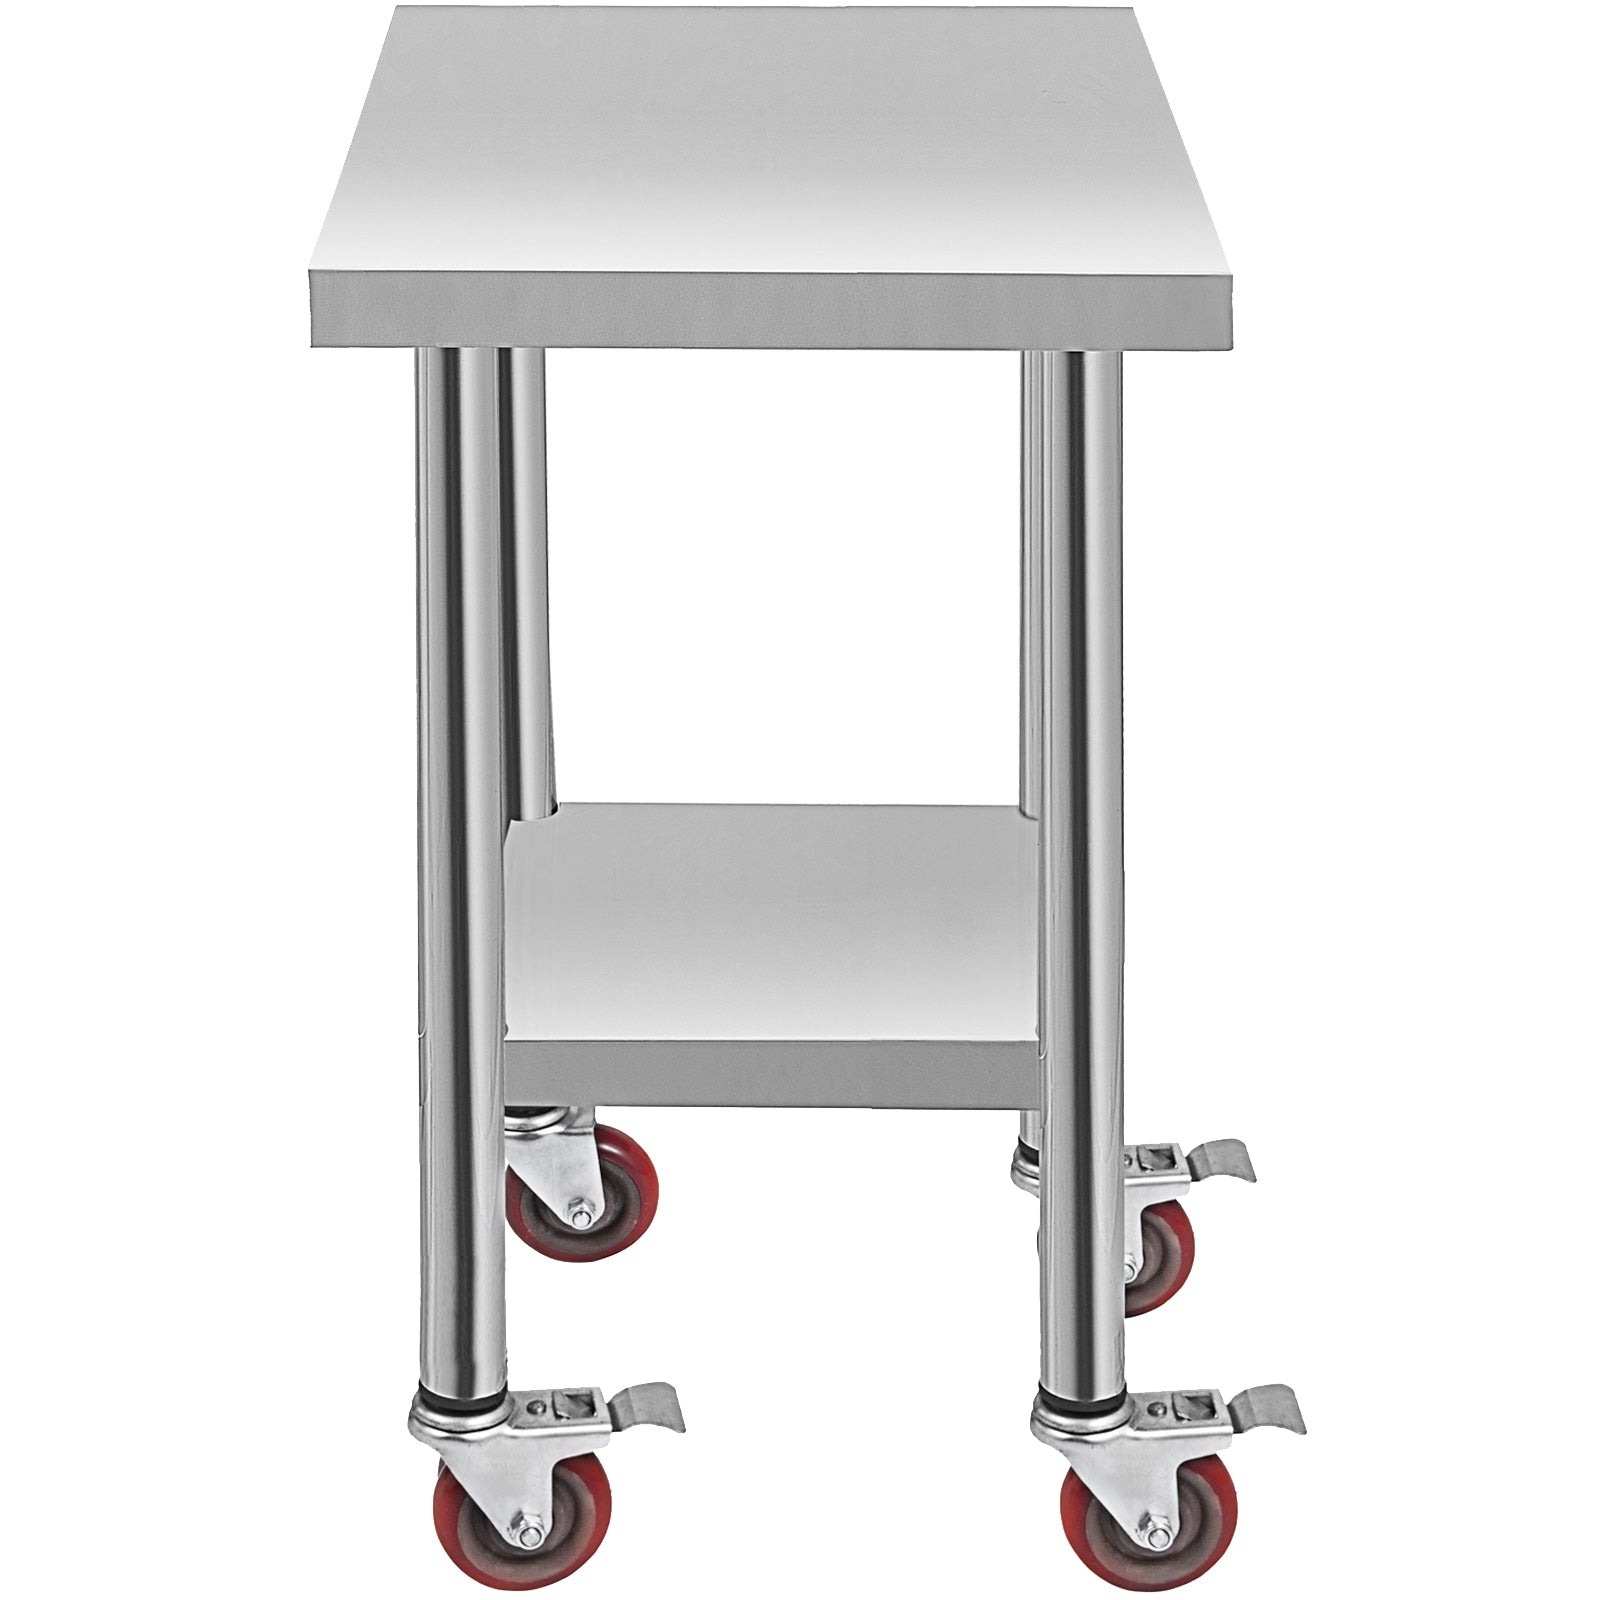 762 X 457 Mm Kitchen Prep Work Table With Wheels Worktop Catering Table 2 Tier